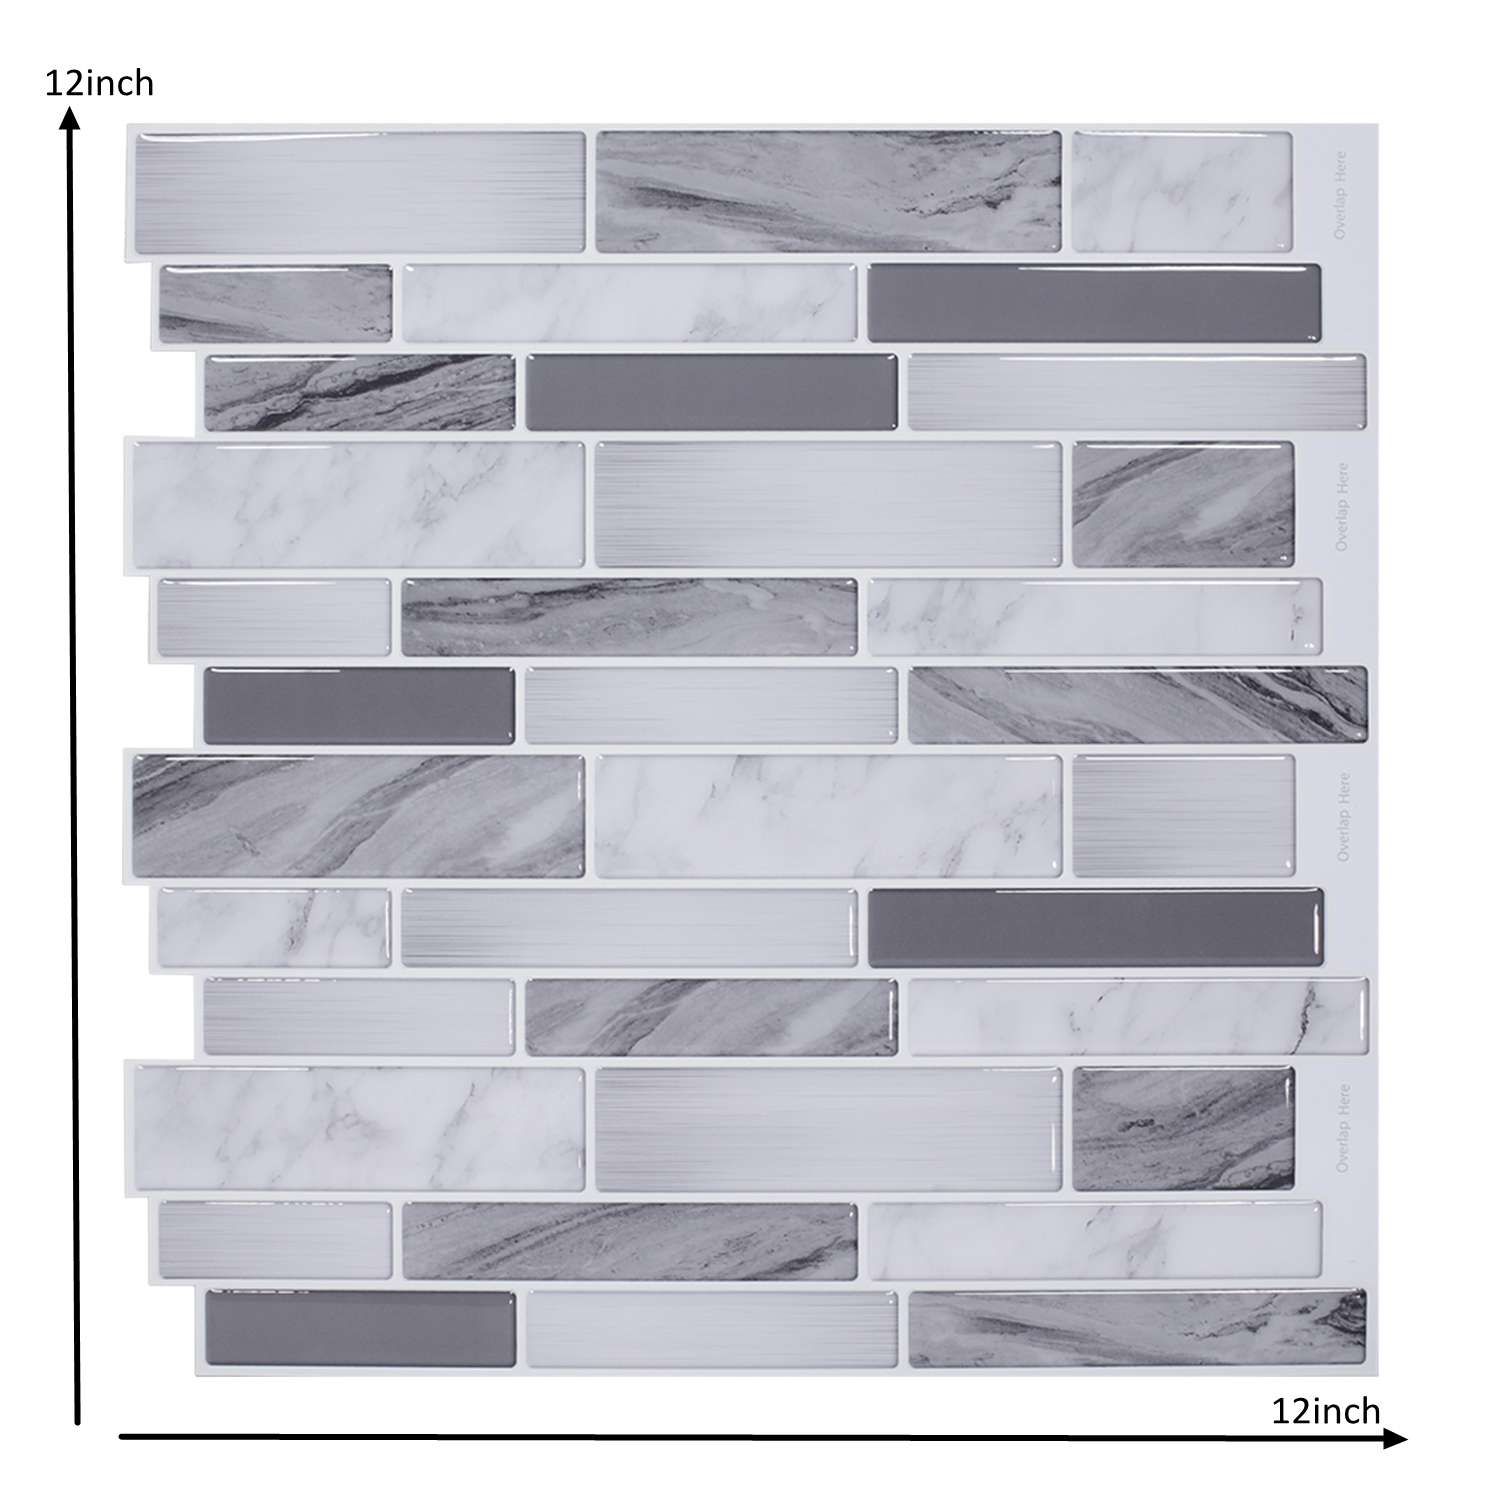 - 3D Wall Stickers Peel And Stick Wall Tile Backsplash Bathroom